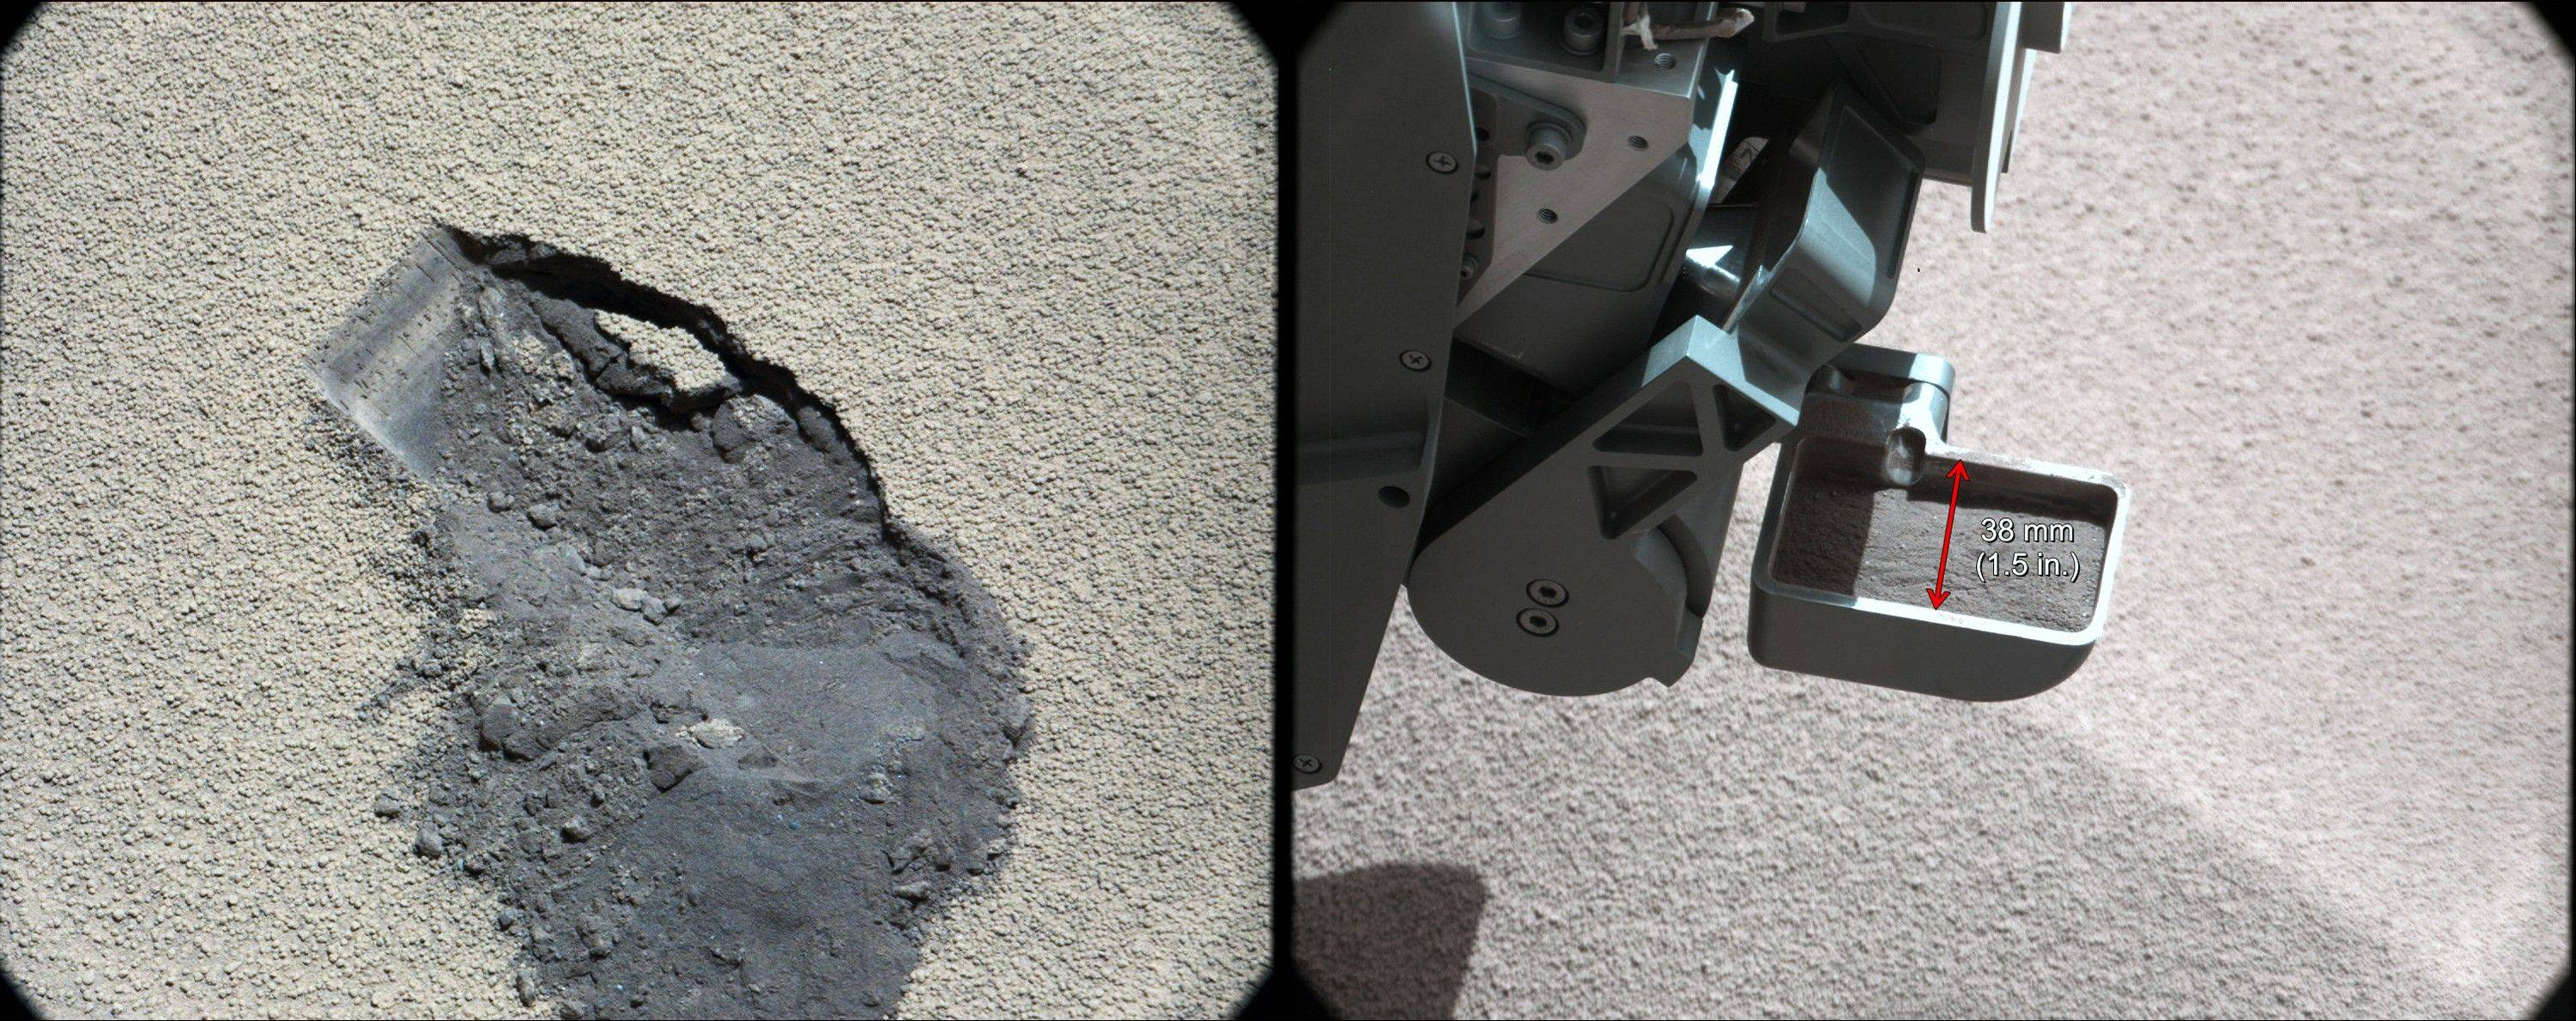 In this image released by NASA on Tuesday Oct. 30, 2012 shows a scoop of Martian soil collected by the NASA�s Curiosity rover. An analysis of the soil released Tuesday reveals it contains similar minerals found on Hawaii�s Mauna Kea. Curiosity landed on Mars in August on a two-year mission to study whether the environment was habitable.